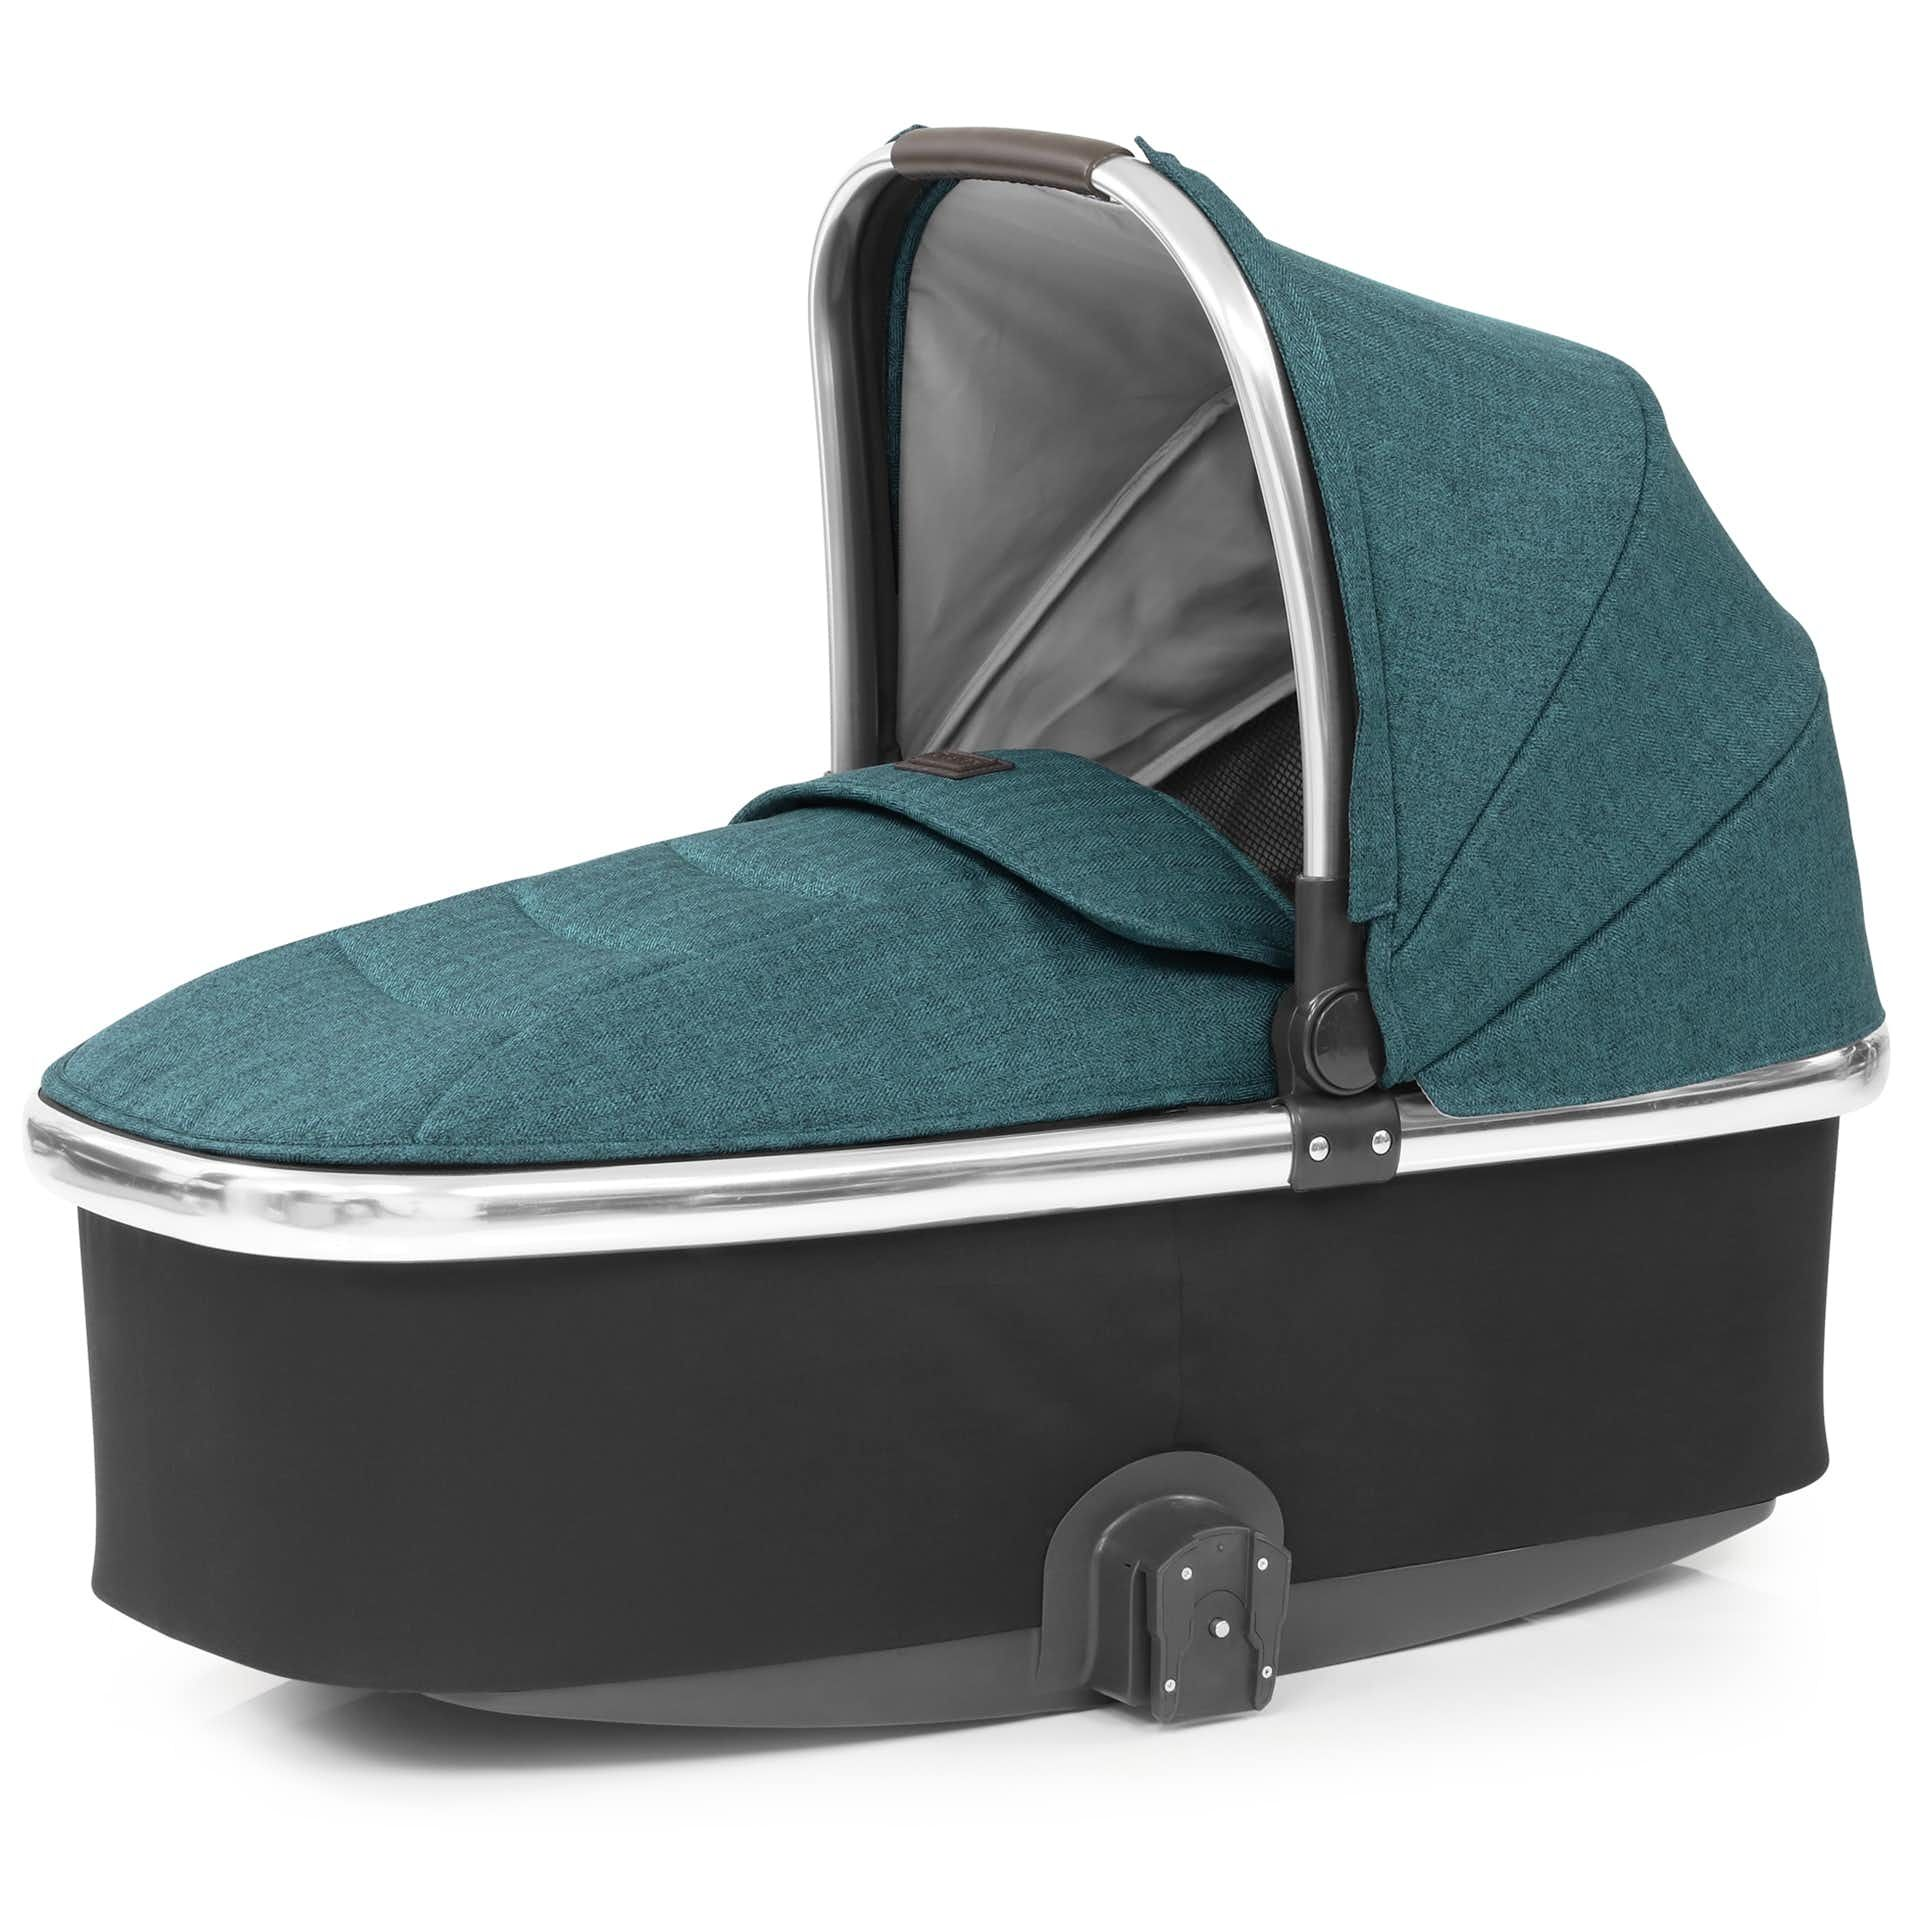 Oyster Double Pram Mothercare Oyster O3ccpa Oyster 3 Mirror Finish Carrycot Peacock